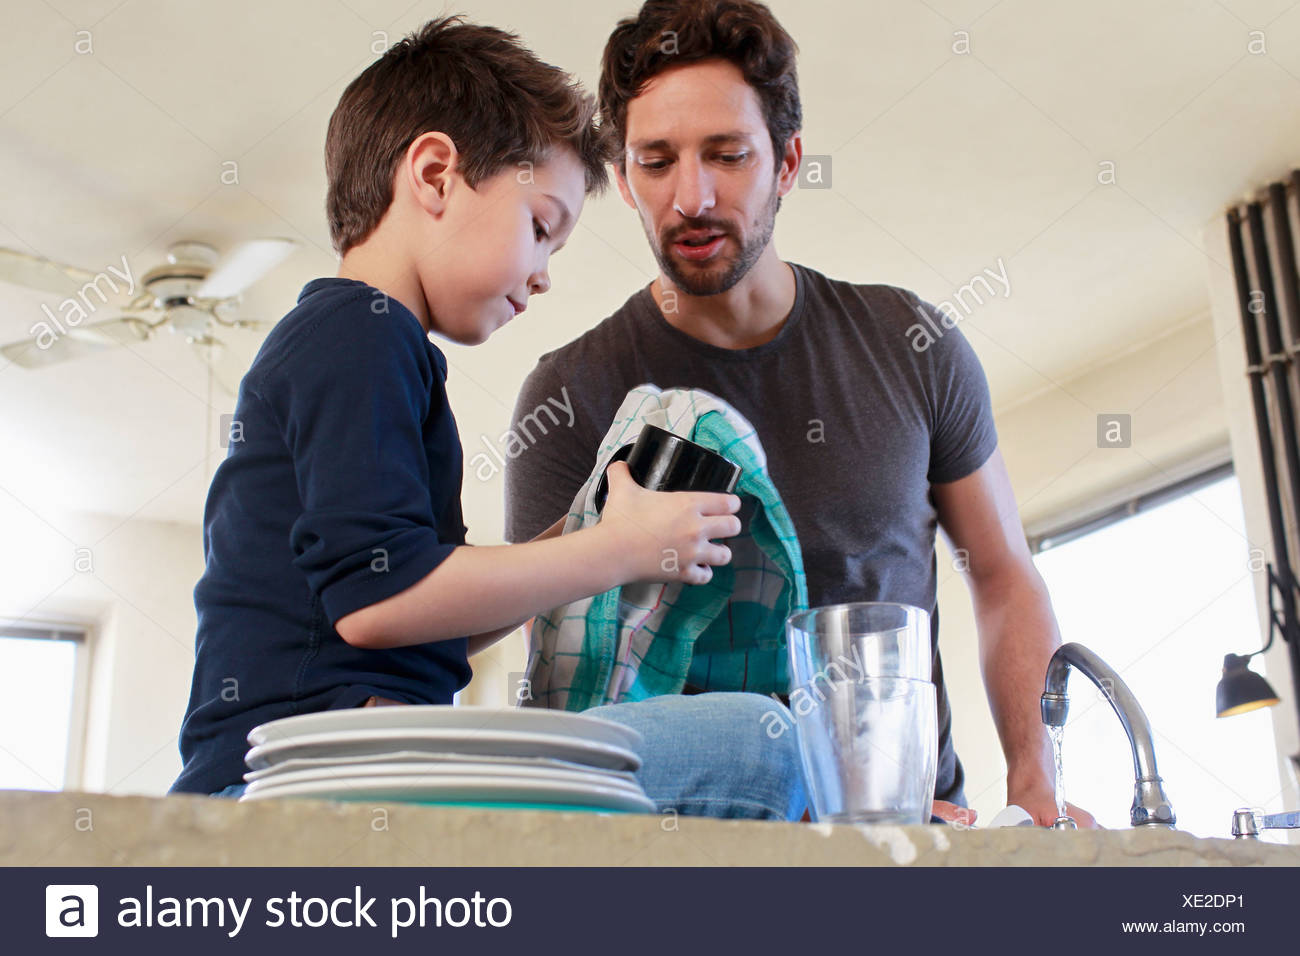 Father and son doing washing up chores - Stock Image